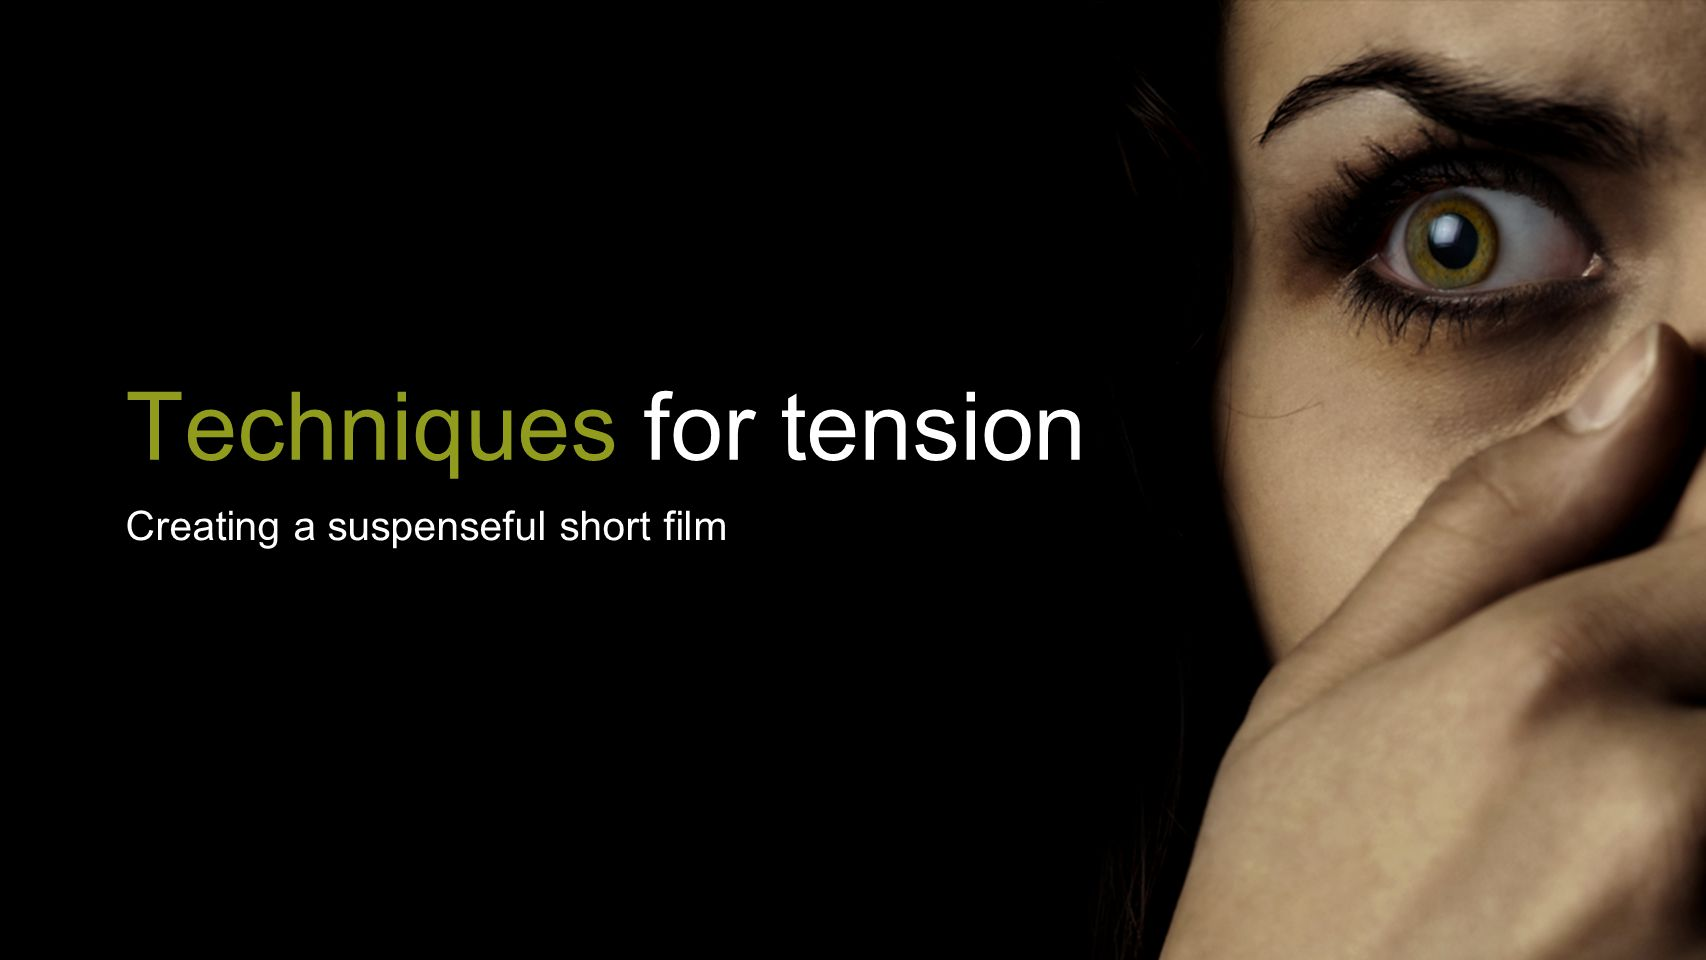 Techniques for tension